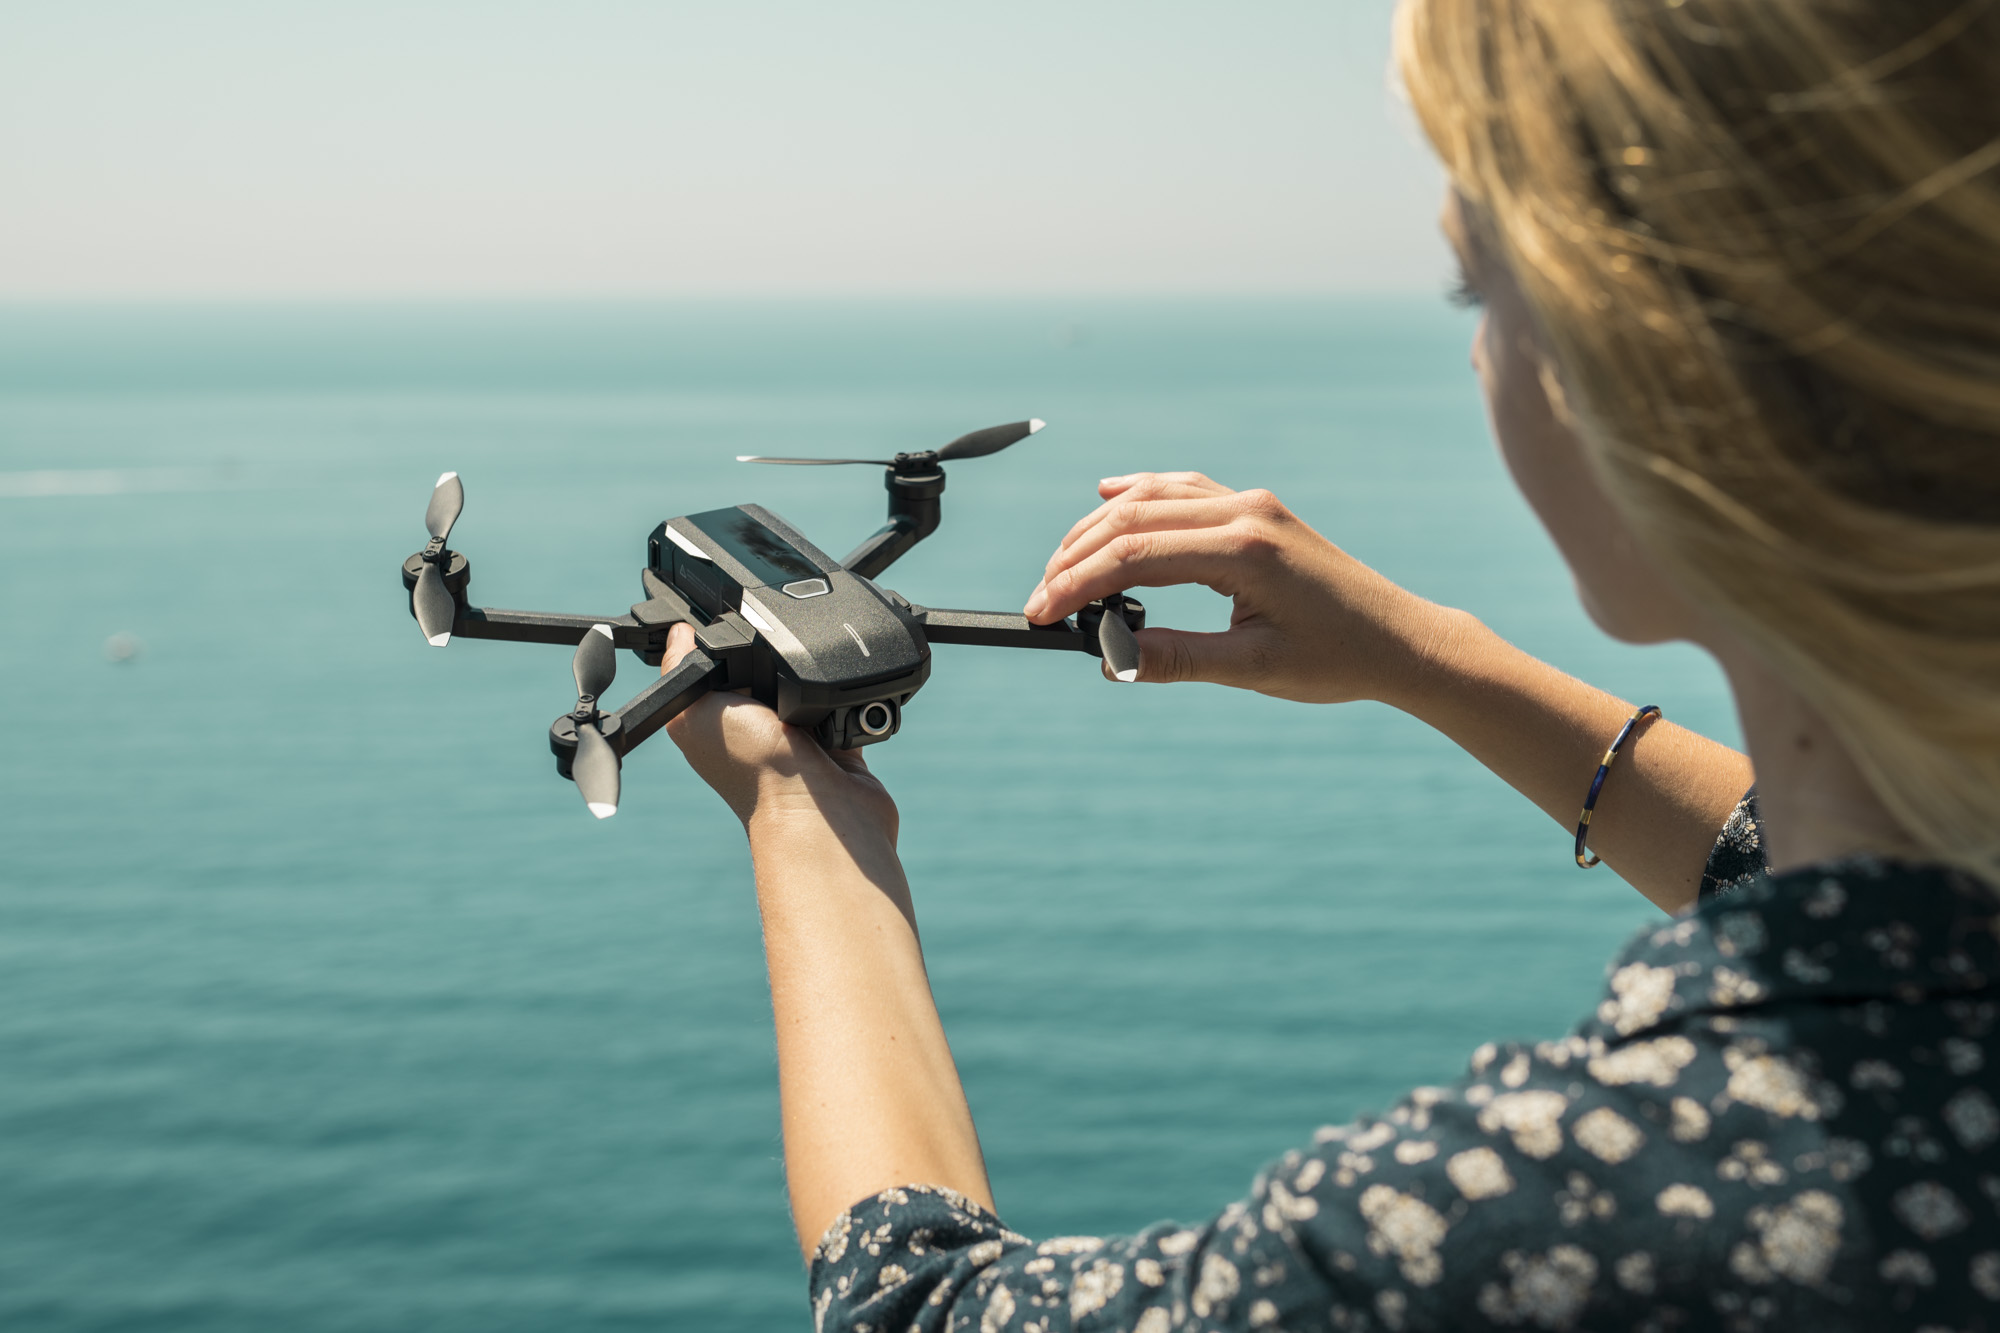 Yuneec's new Mantis Q drone may not have obstacle avoidance, but it does has voice control